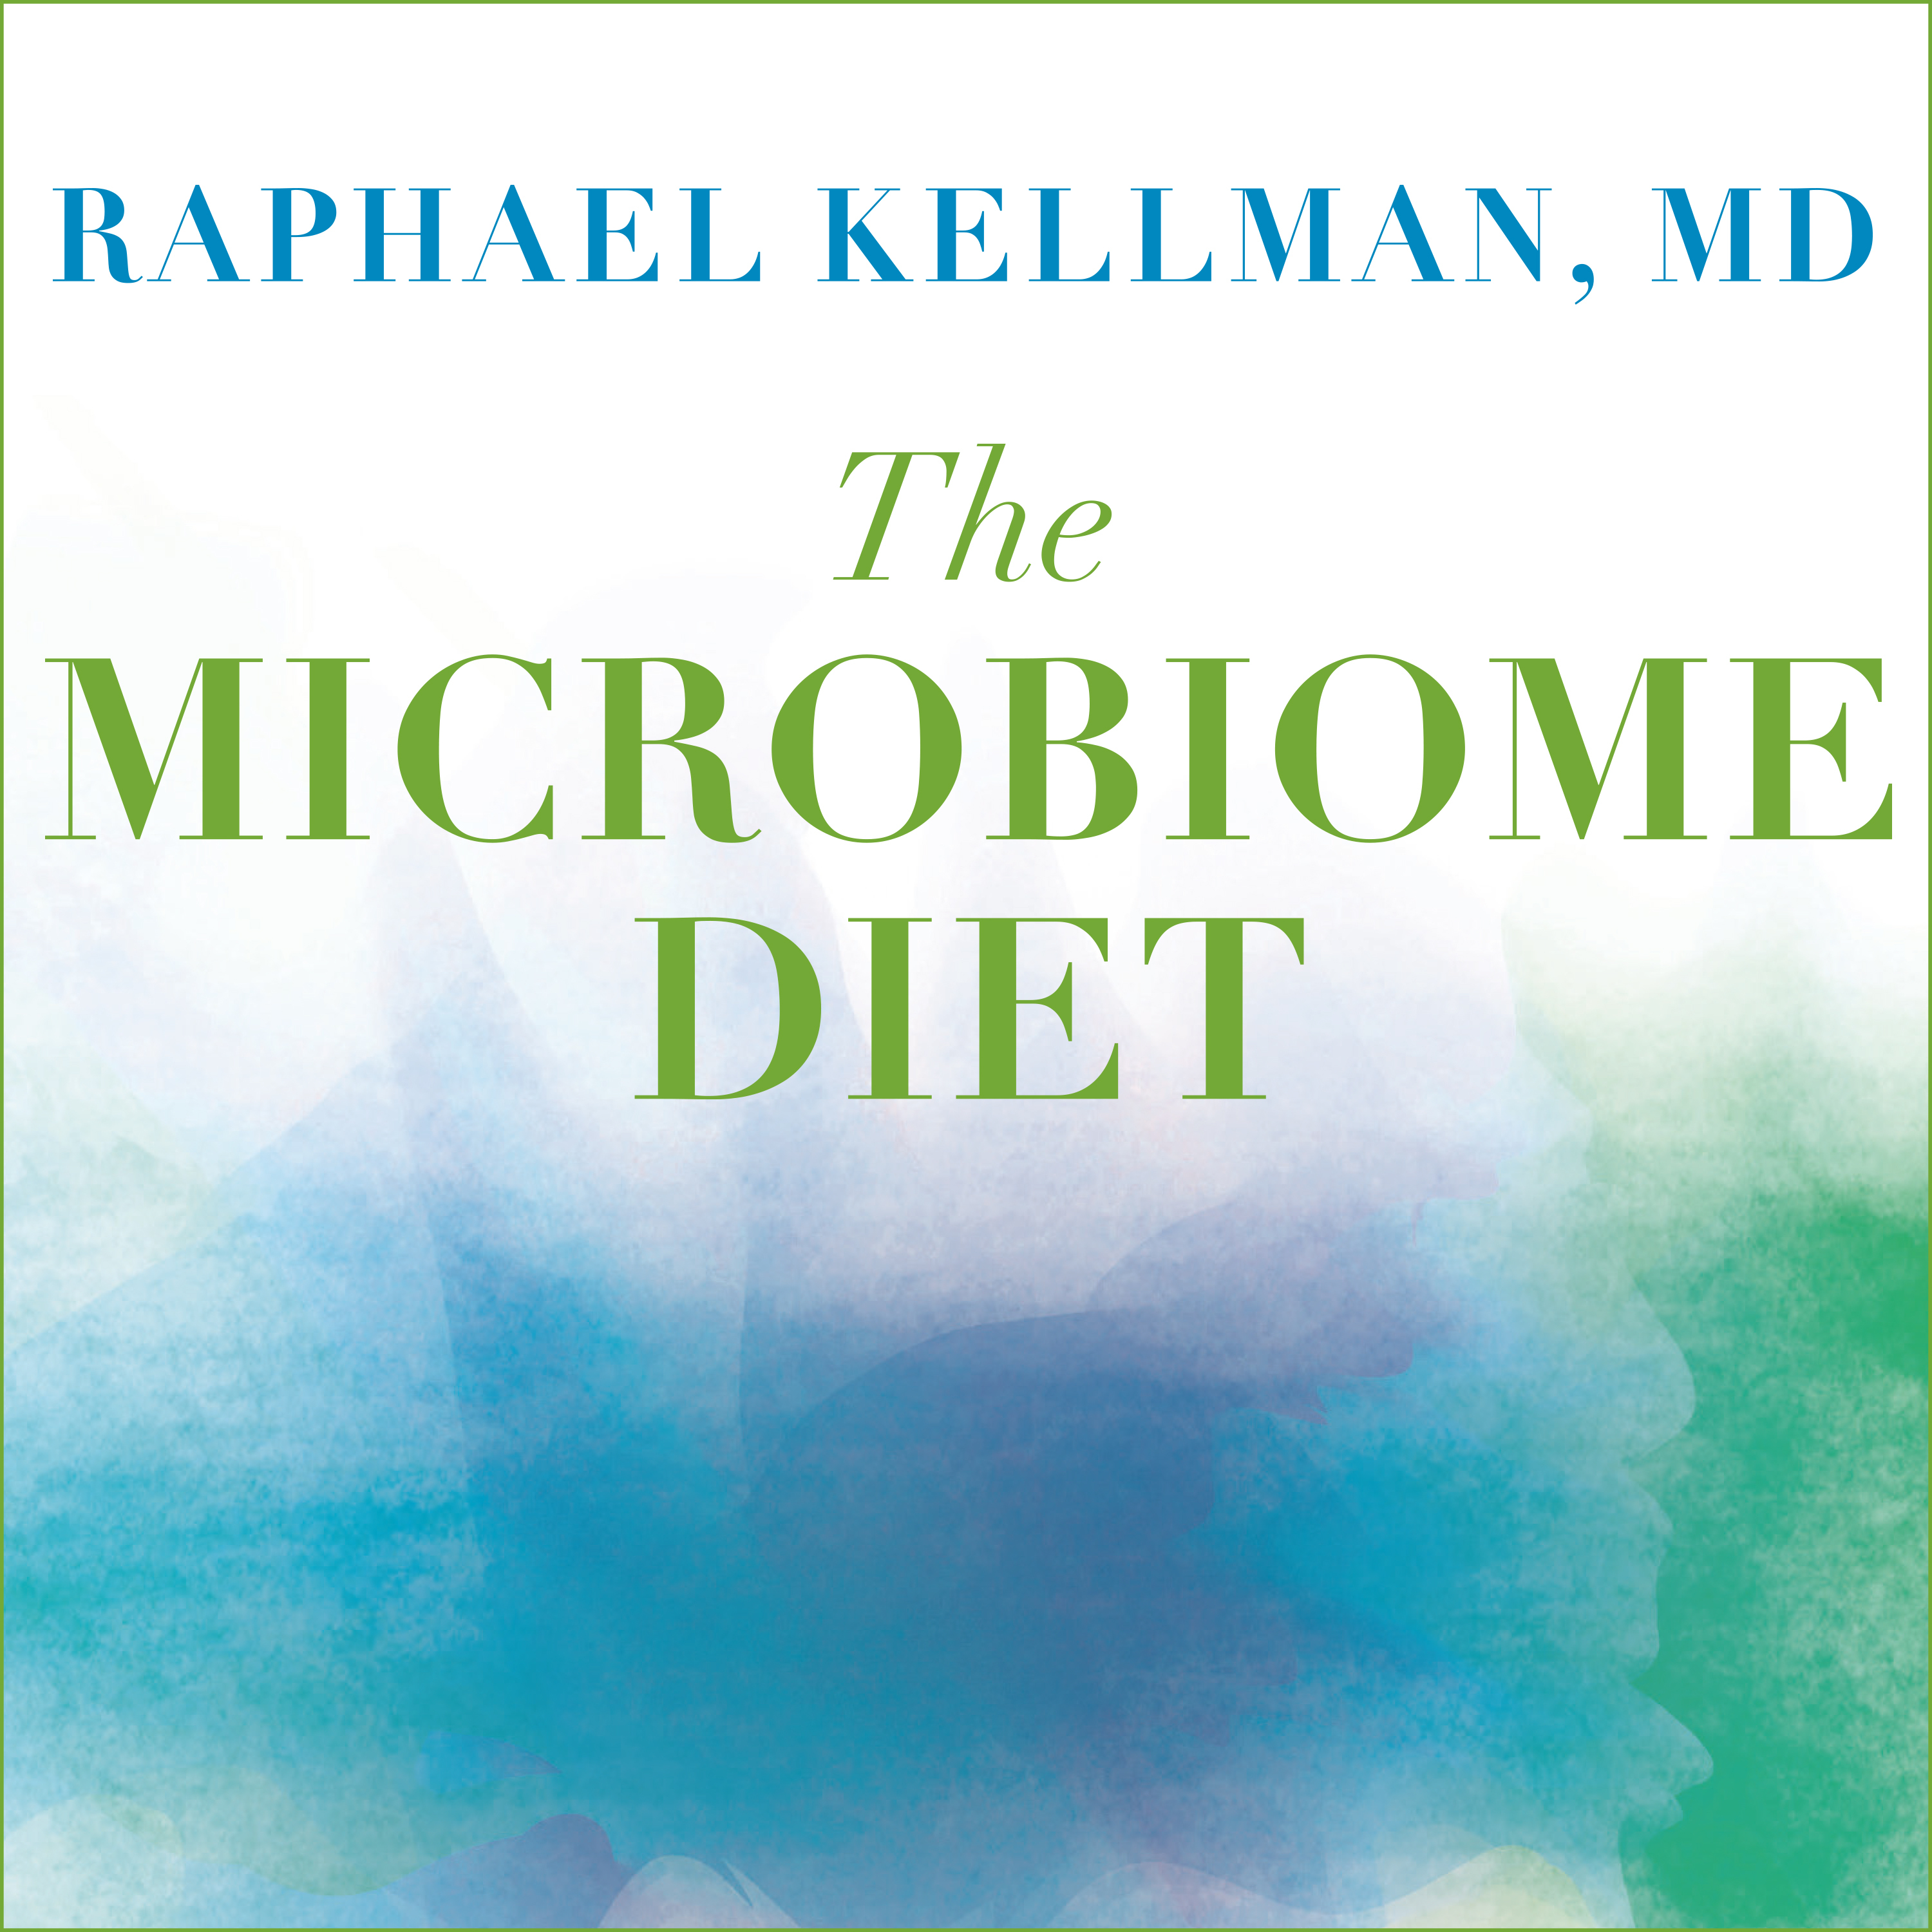 Printable The Microbiome Diet: The Scientifically Proven Way to Restore Your Gut Health and Achieve Permanent Weight Loss Audiobook Cover Art